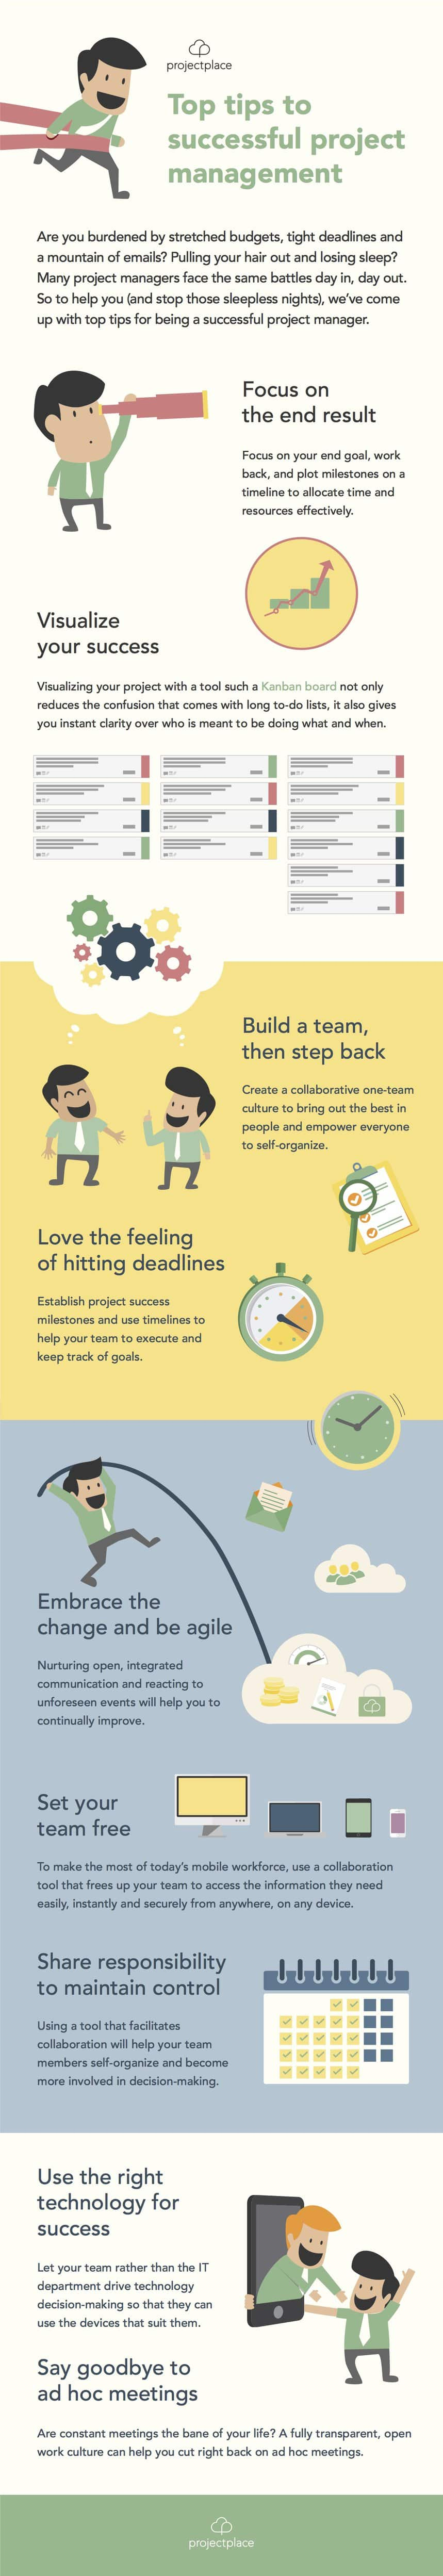 Top tips success infographic